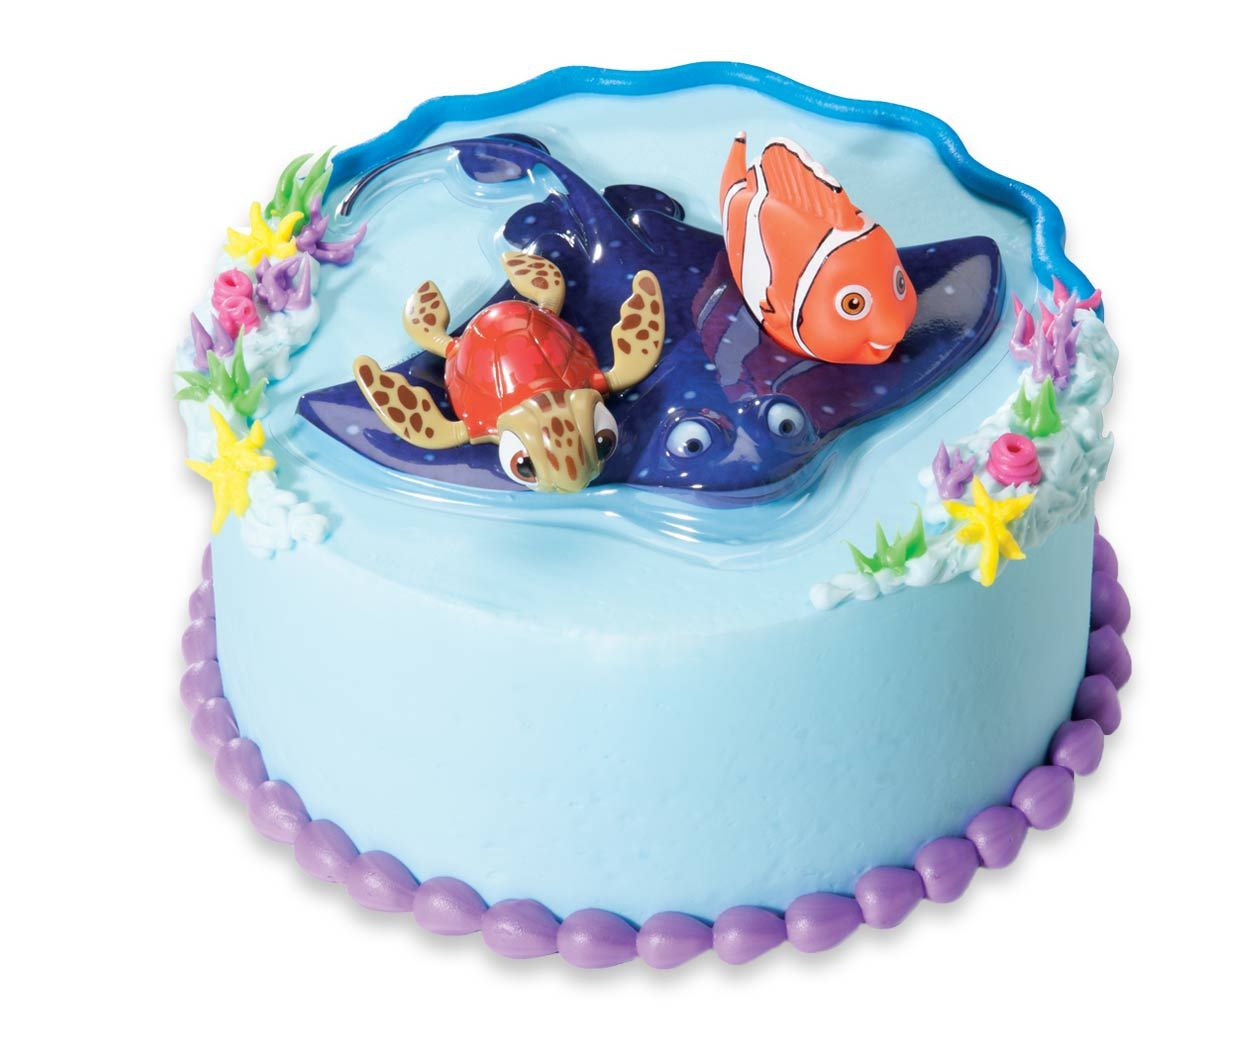 Order a Kids Birthday Cake at Cold Stone Creamery Evies 5th